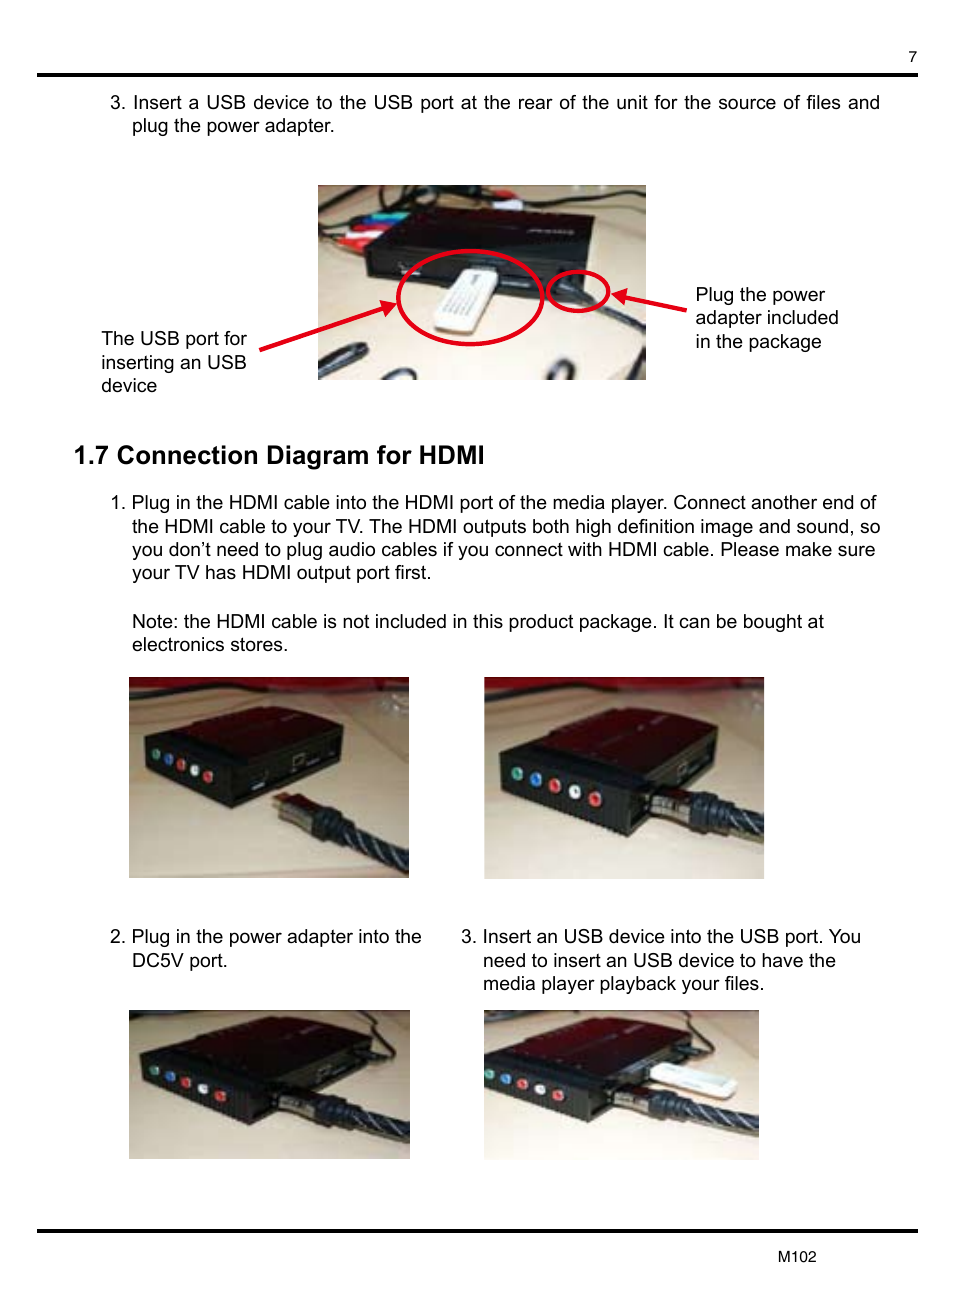 7 Connection Diagram For Hdmi Kworld M102 User Manual Page 20 Connections Diagrams